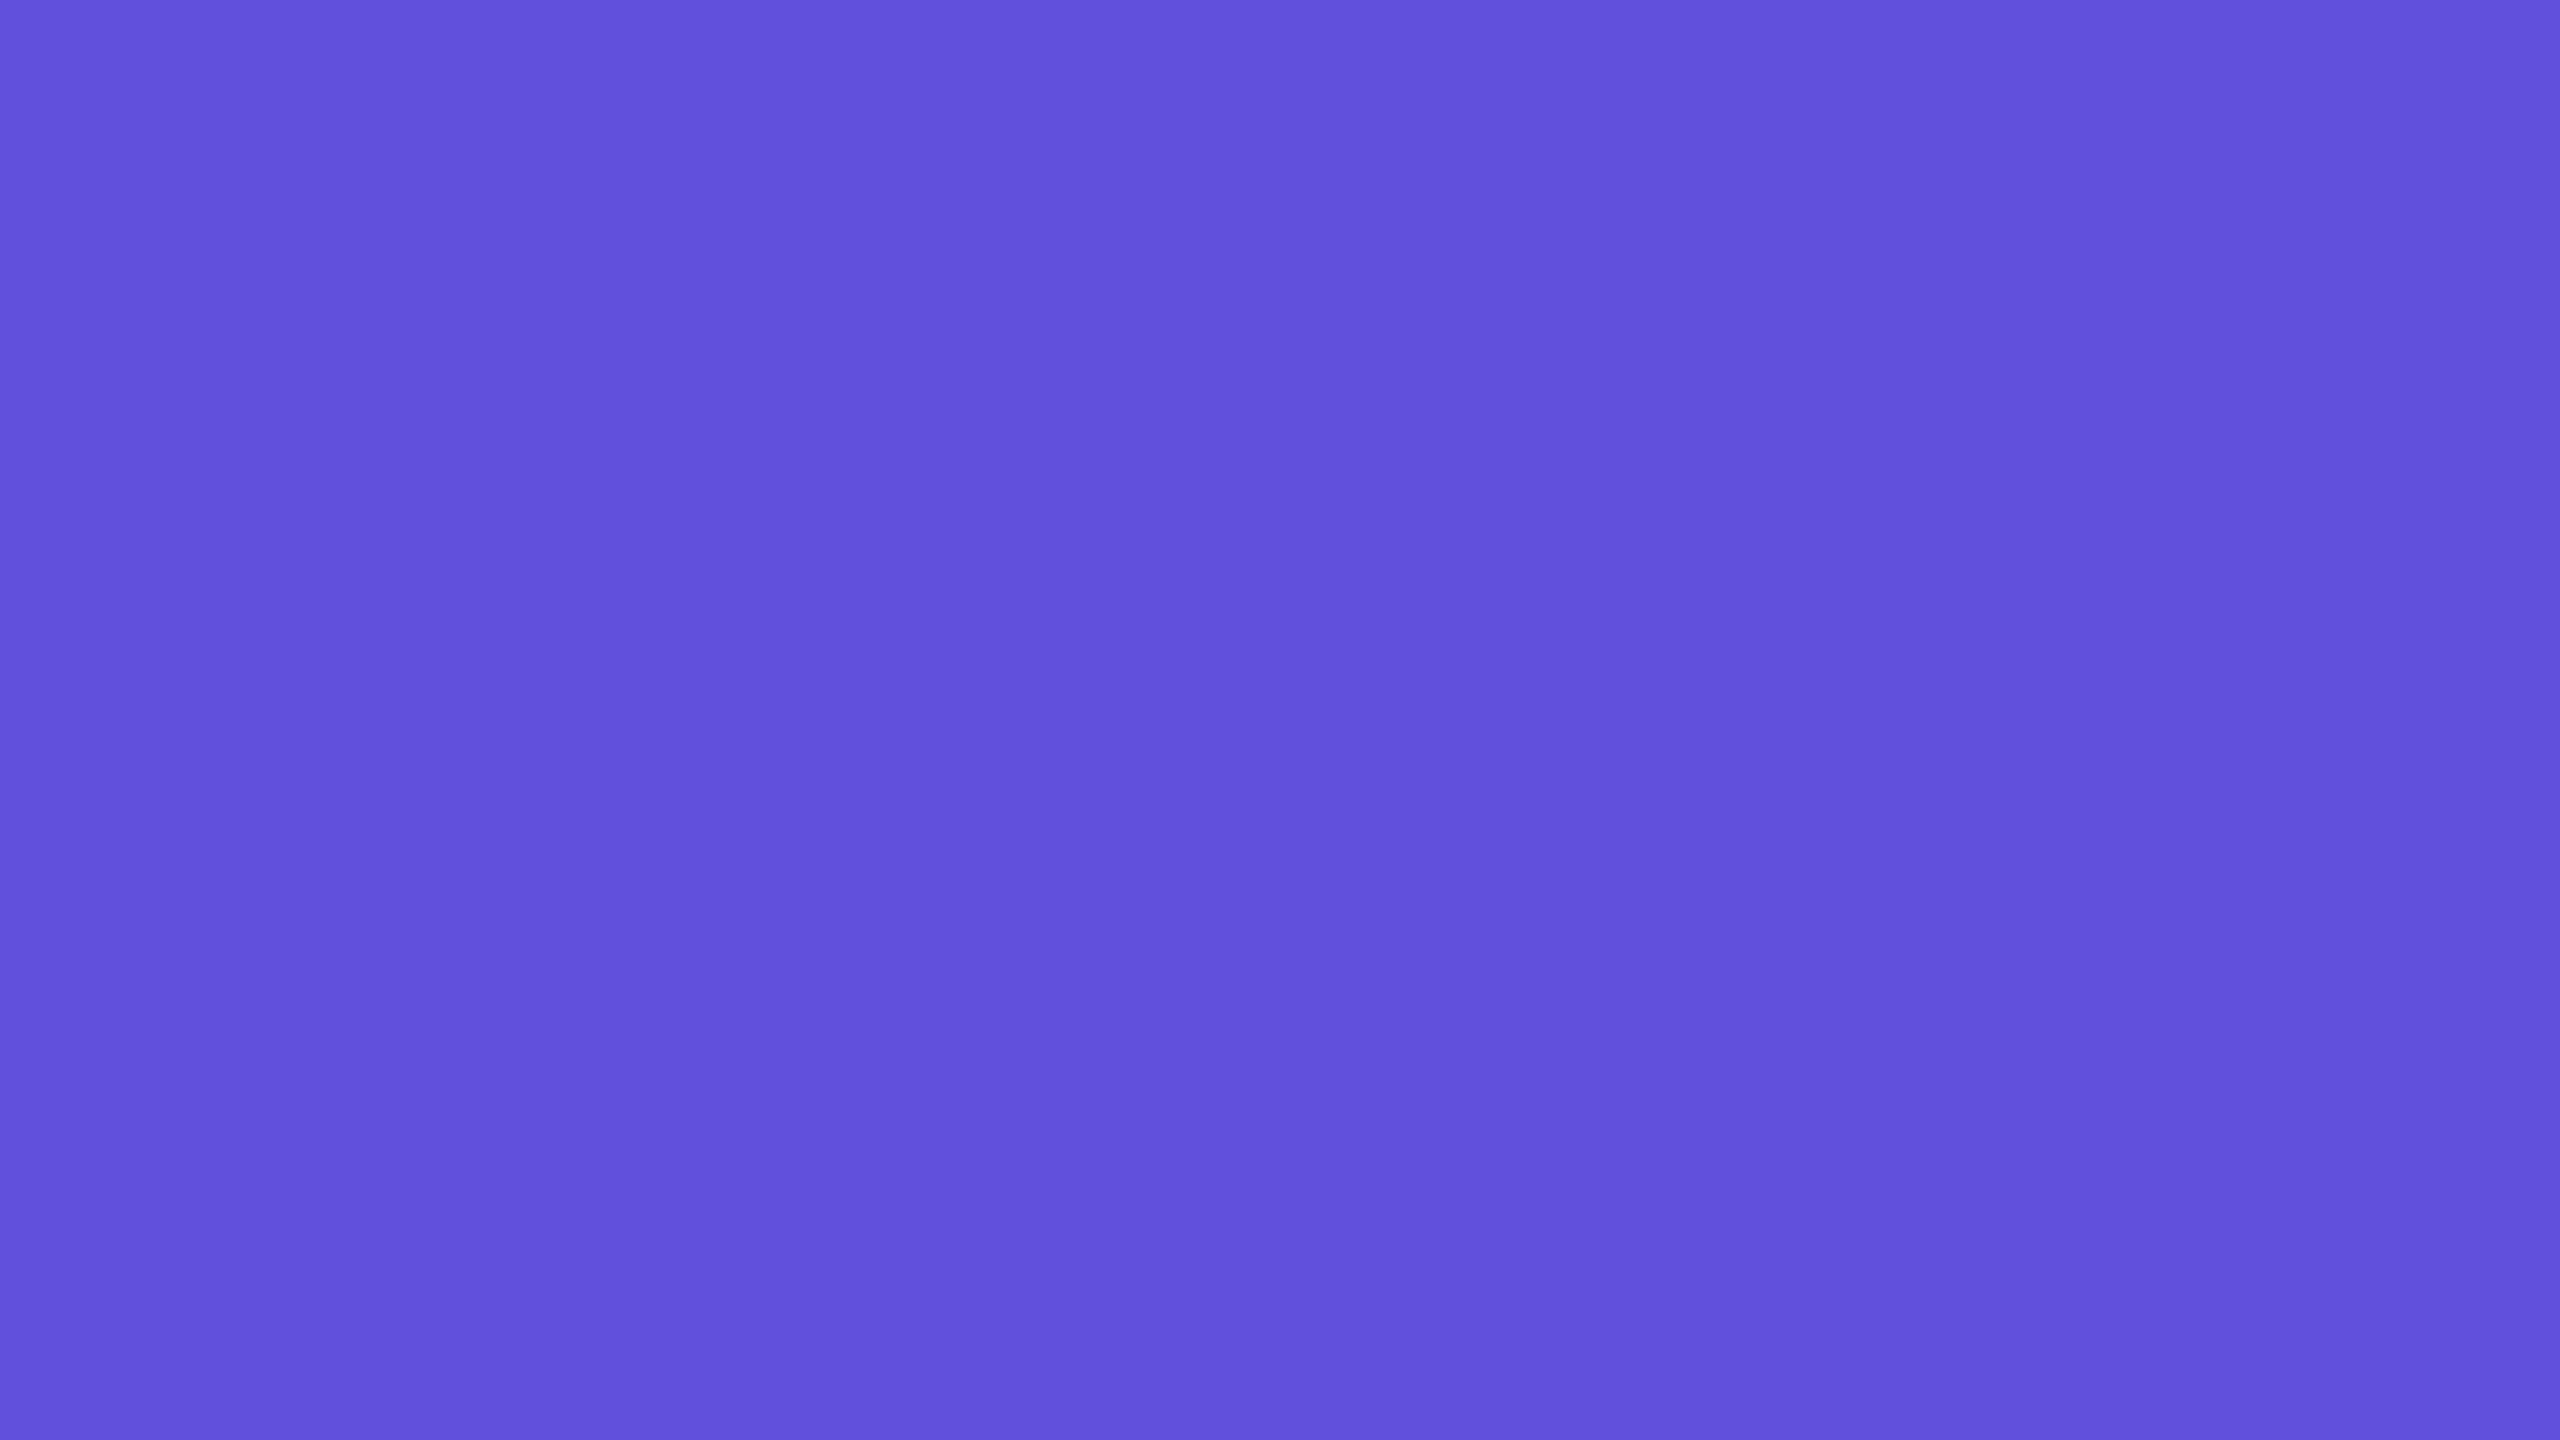 2560x1440 Majorelle Blue Solid Color Background